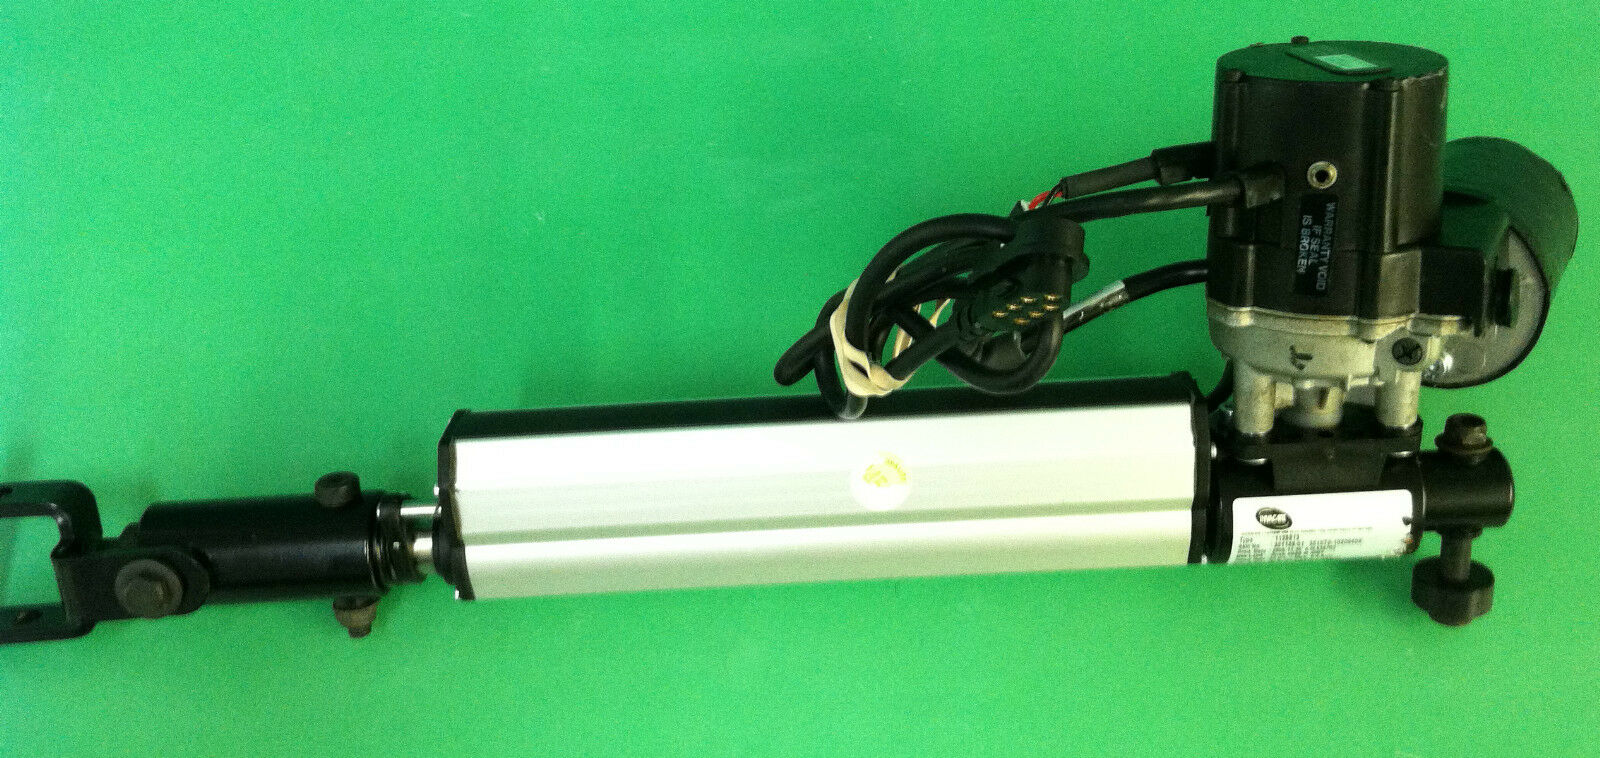 Invacare Leg Actuator  MK6 CM Leg IAM  1140035 for Power Wheelchair  #5479